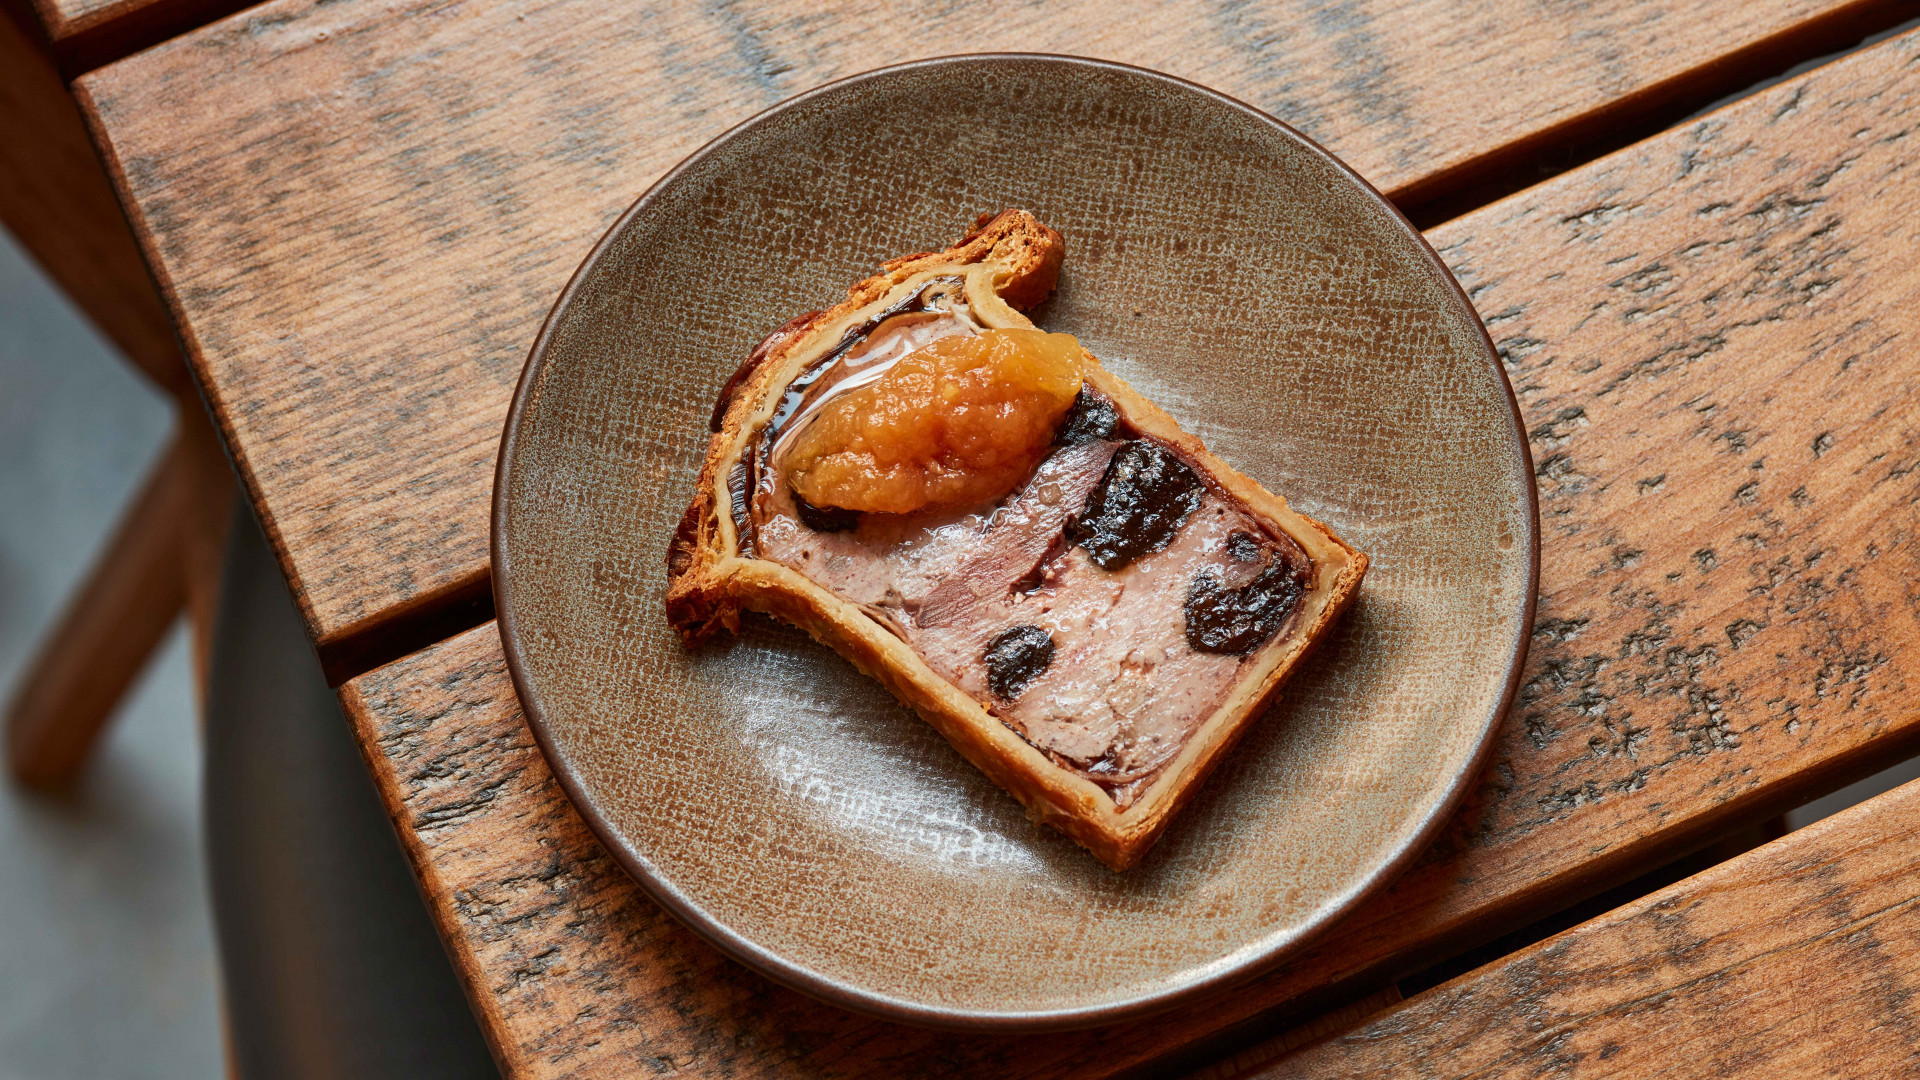 Game pate en croute at Lino, Clerkenwell